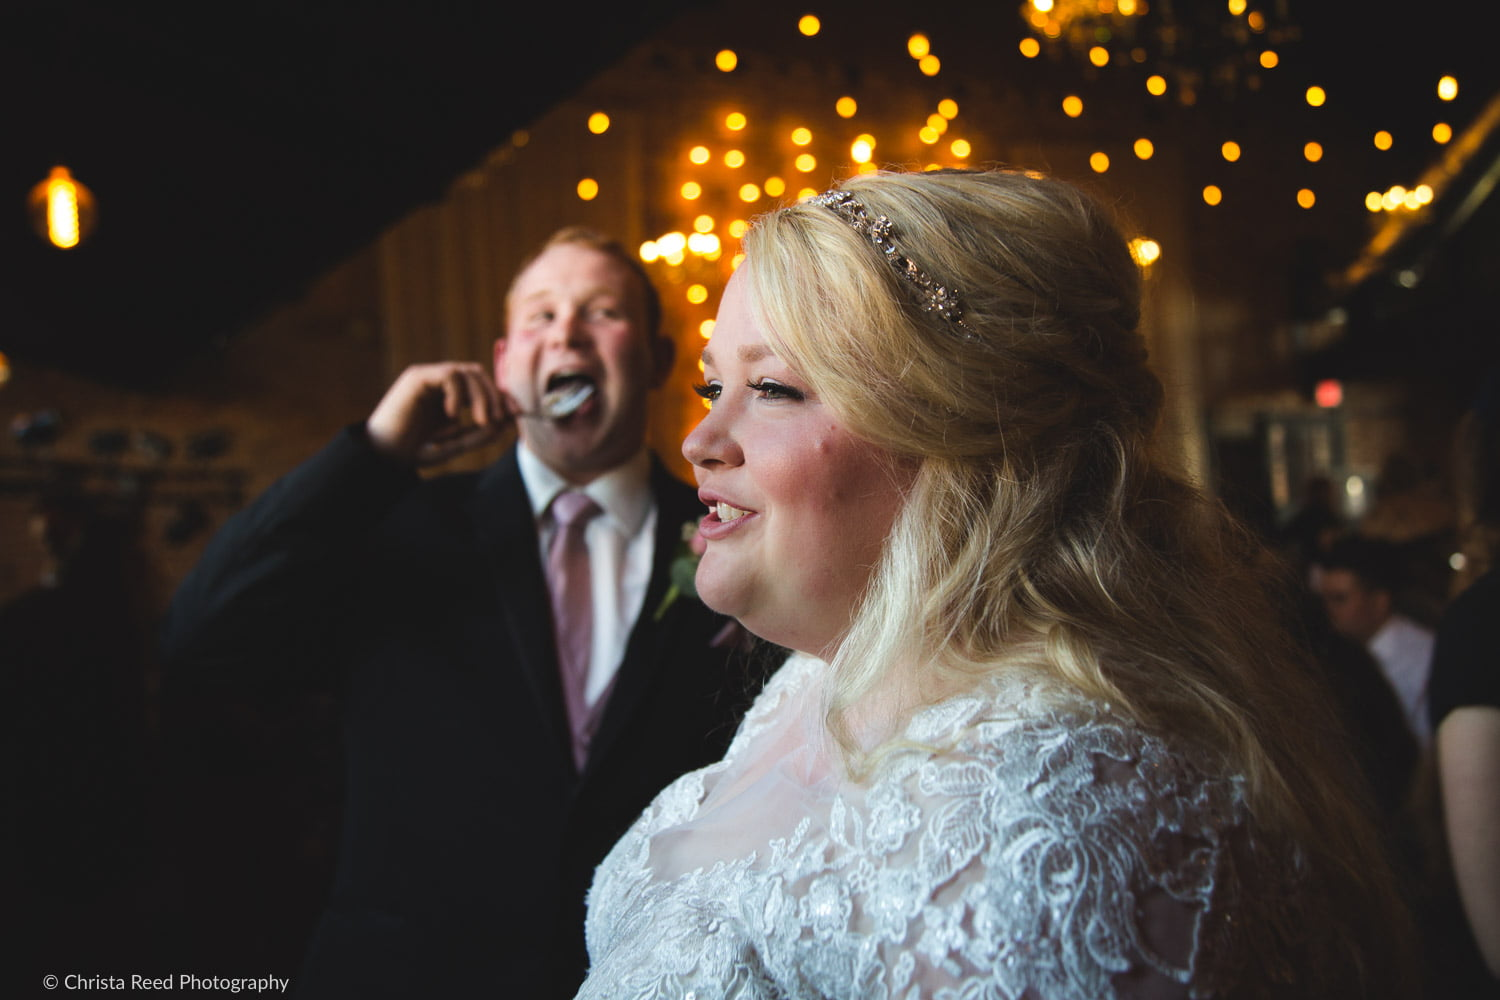 funny moments with documentary wedding photography